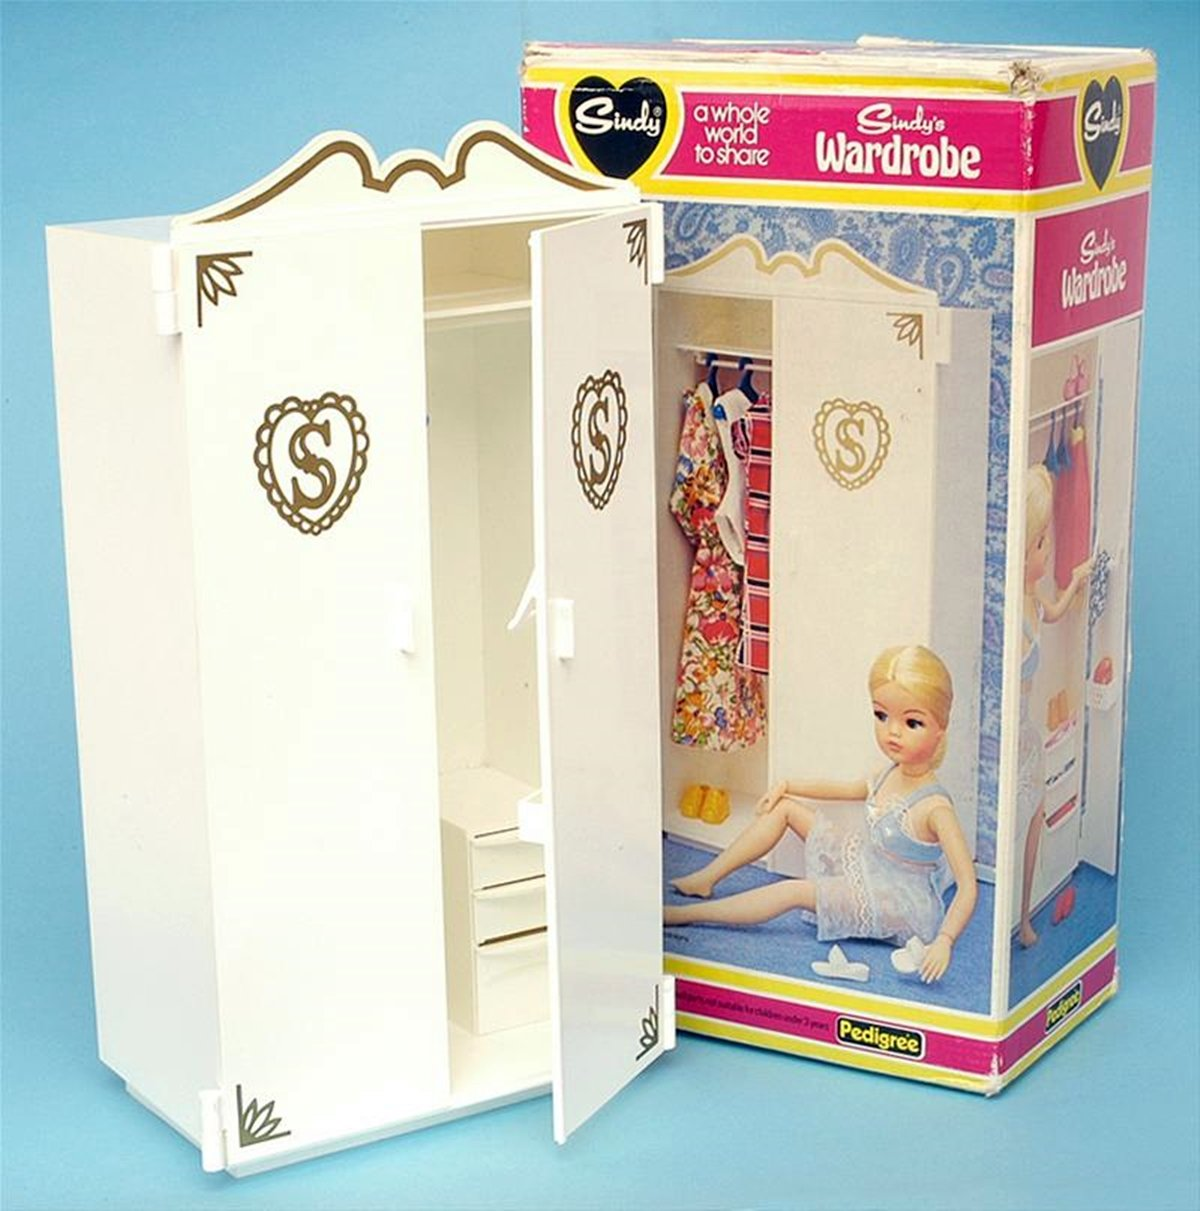 6 20 Things You Would Find In An 80s Girl's Bedroom